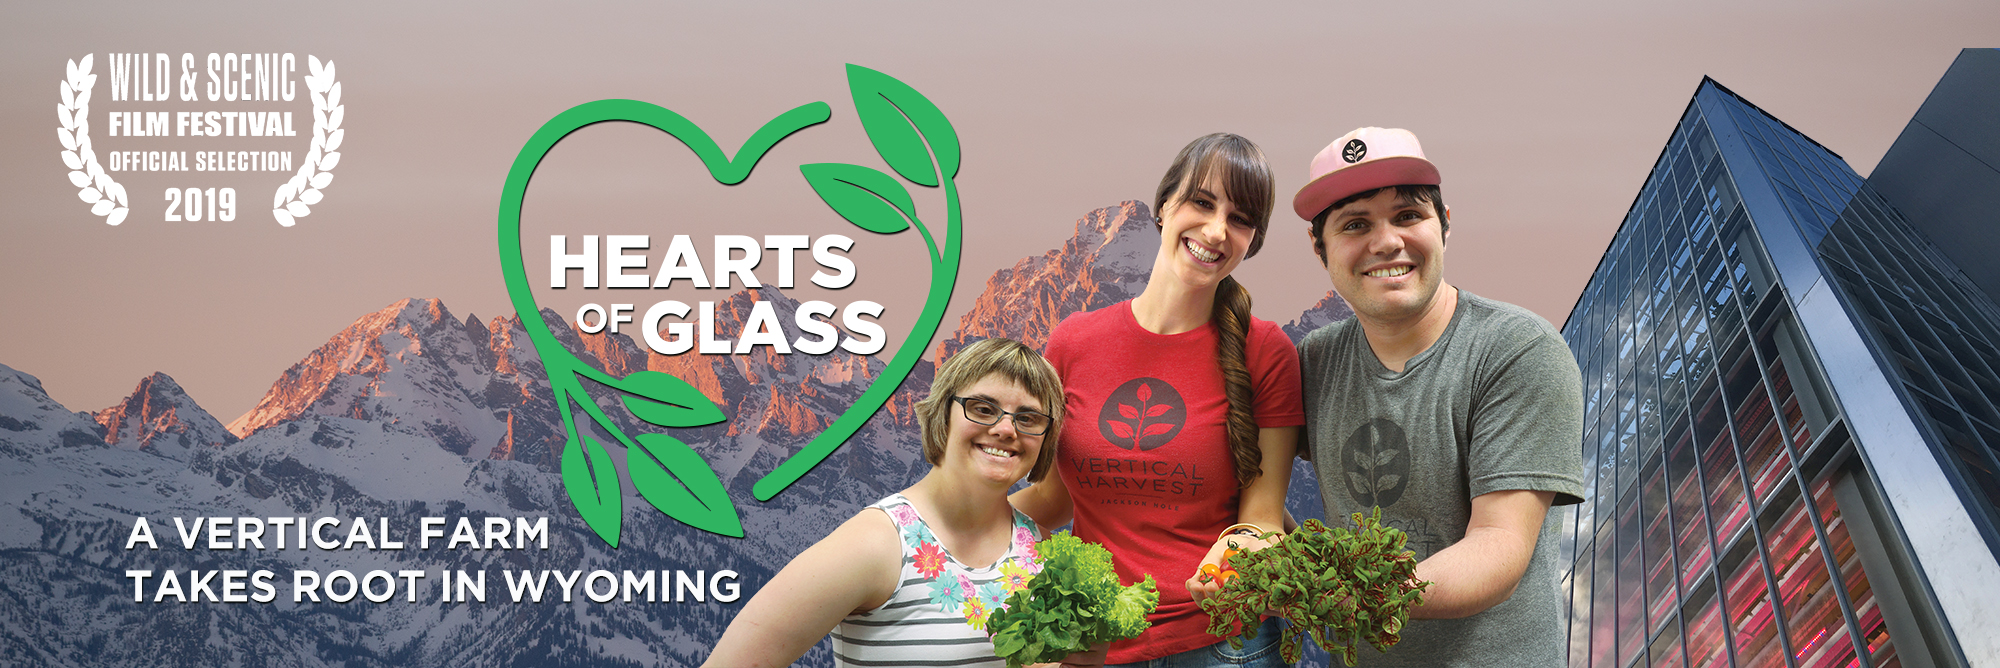 Donate to Hearts of Glass Film